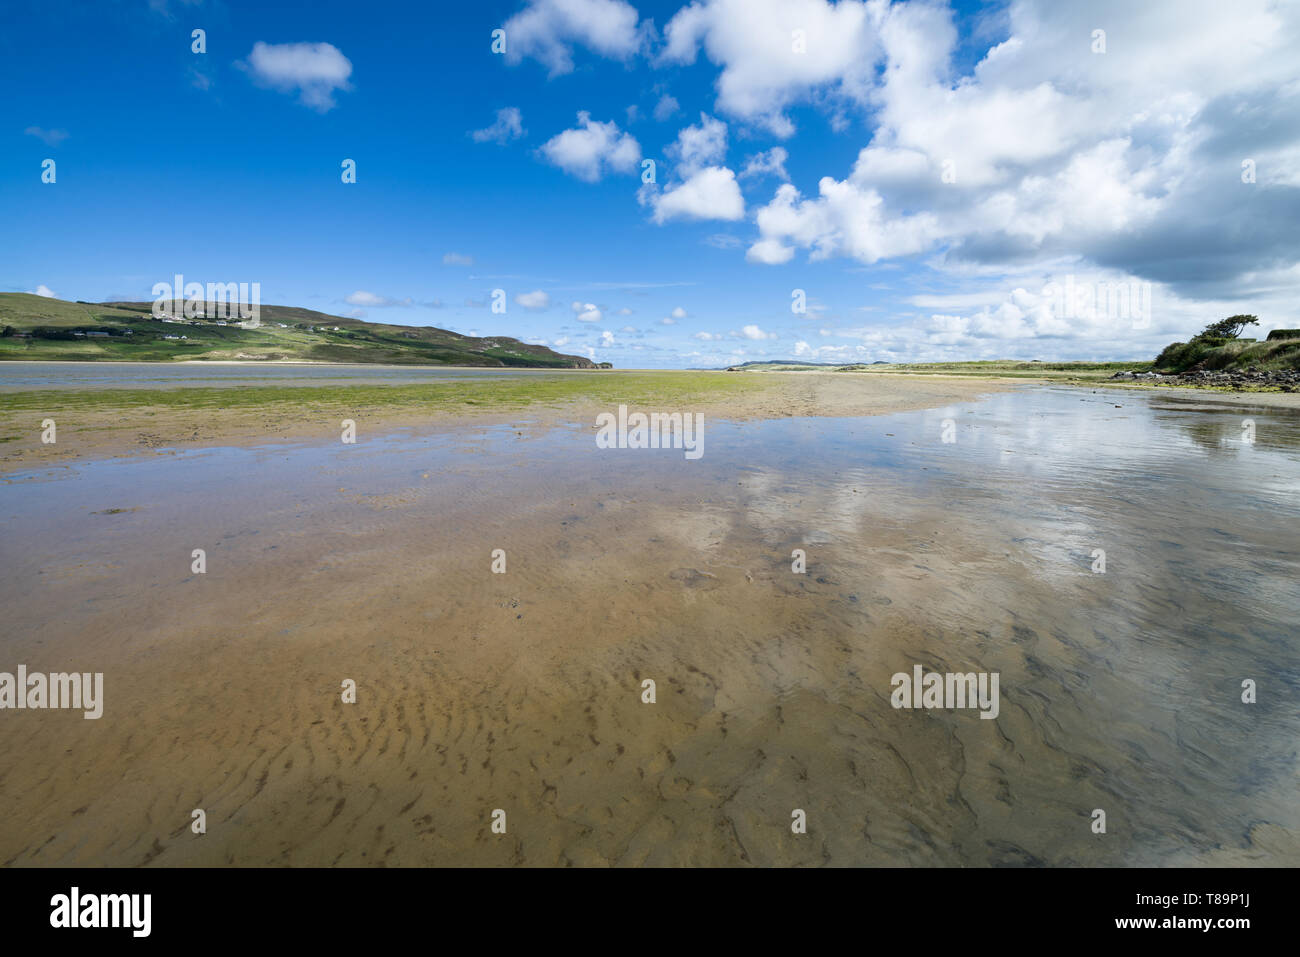 Dunfanaghy Bay at low tide in Donegal, Ireland. White sand and blue sky with clouds at Dunfanaghy beach, a typical irish beach on the northern coast - Stock Image